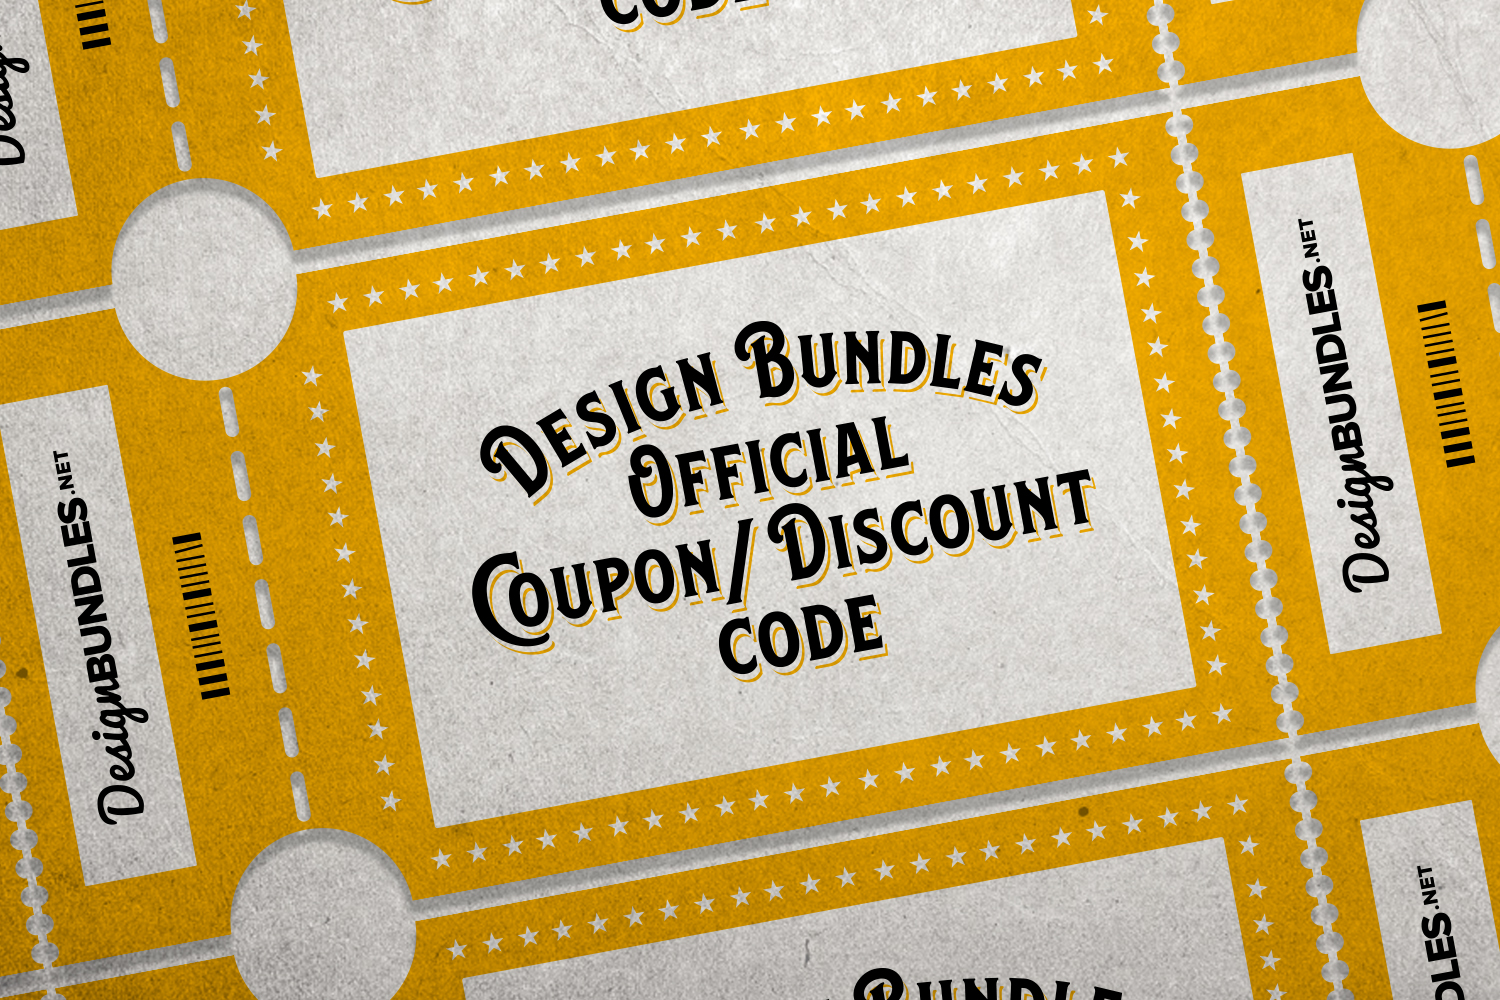 Design Bundles Official Coupon/Discount Code